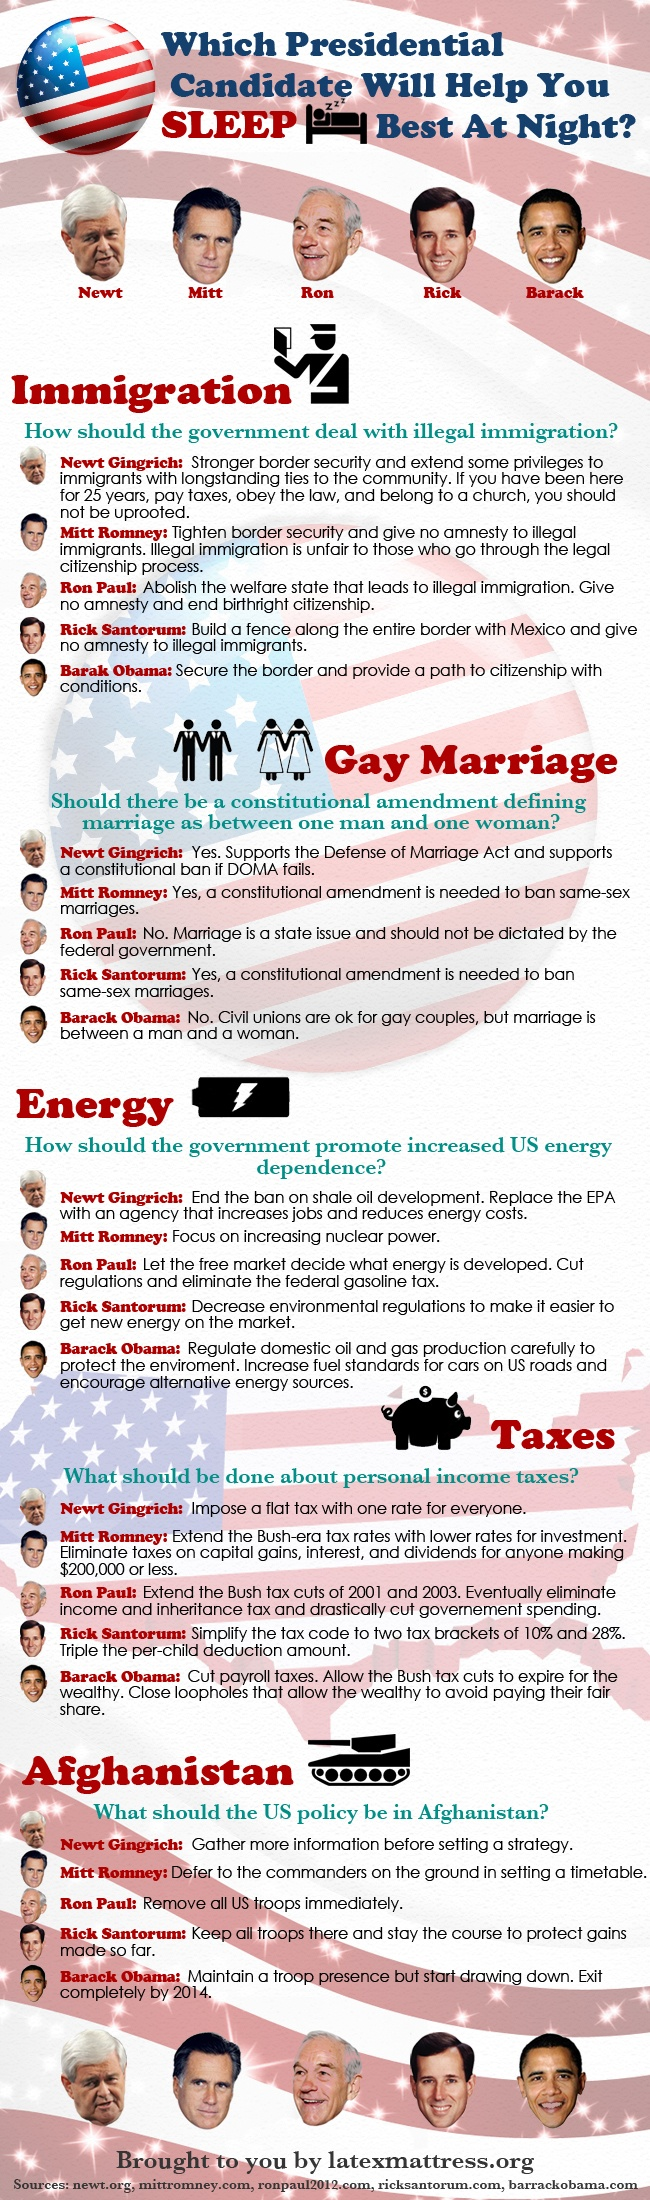 This is good information about the republican candidates and their positions vs Obama